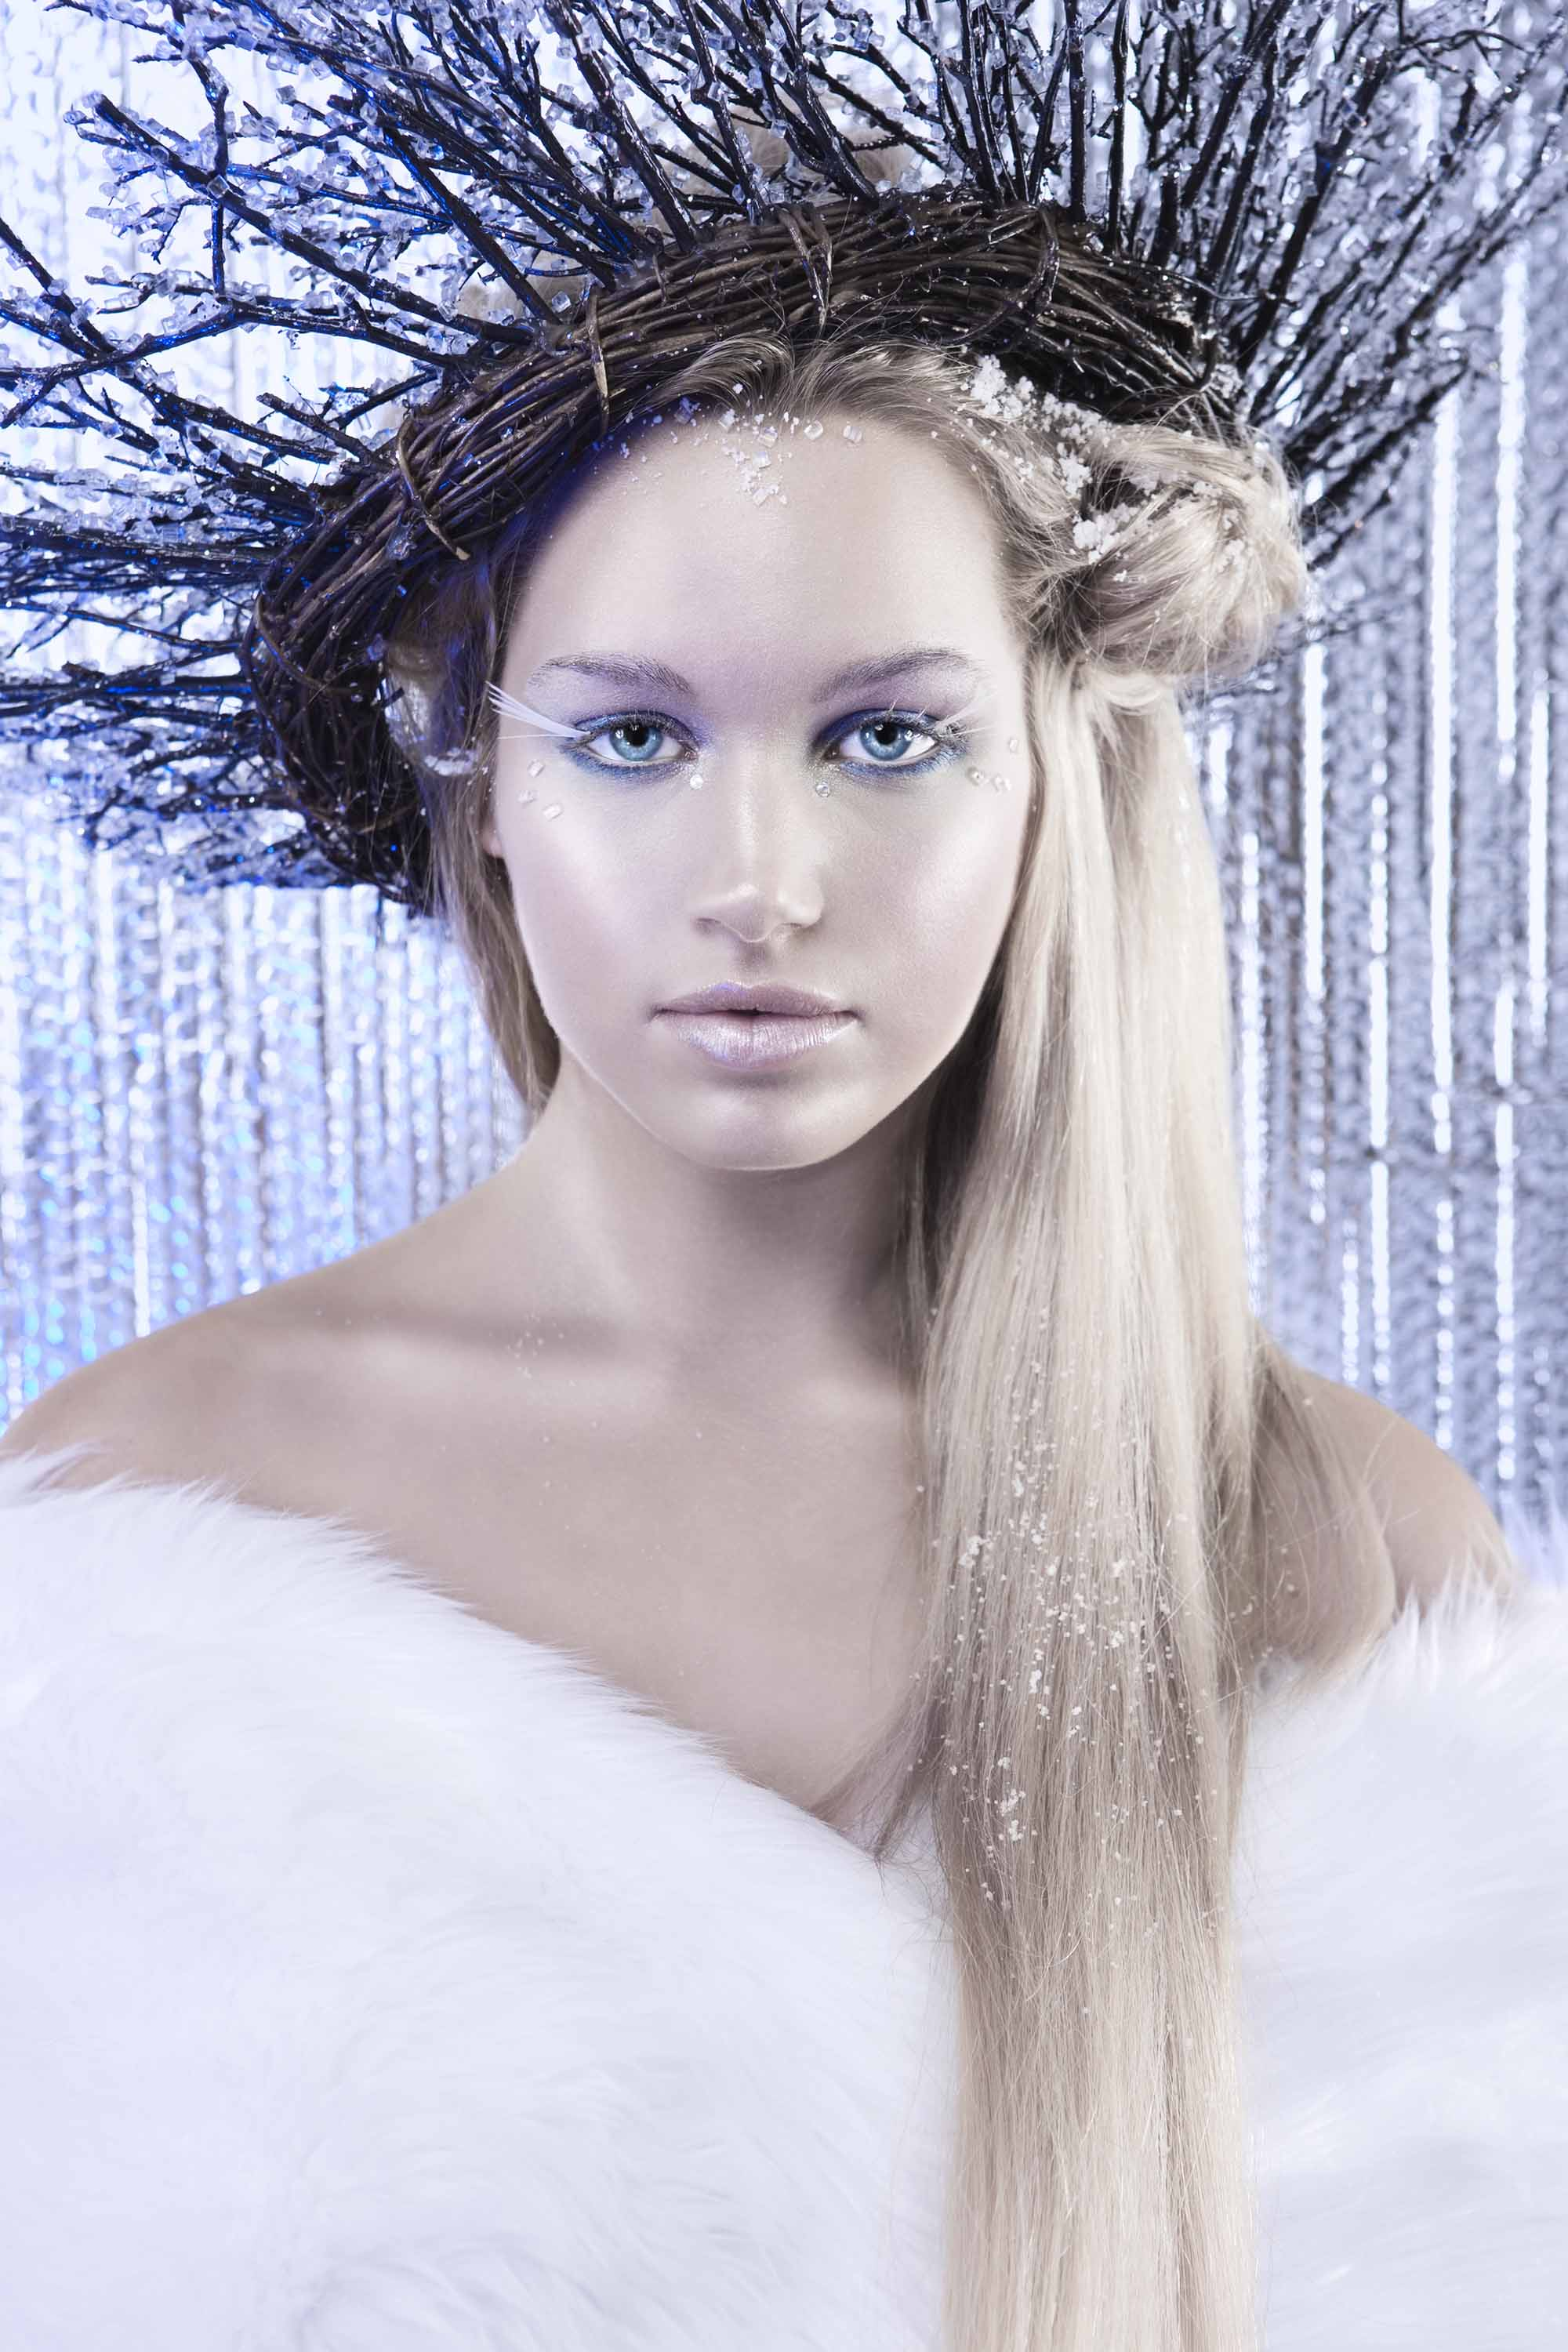 woman dressed as an ice queen with long blonde hair wearing white fur and twigs in her hair